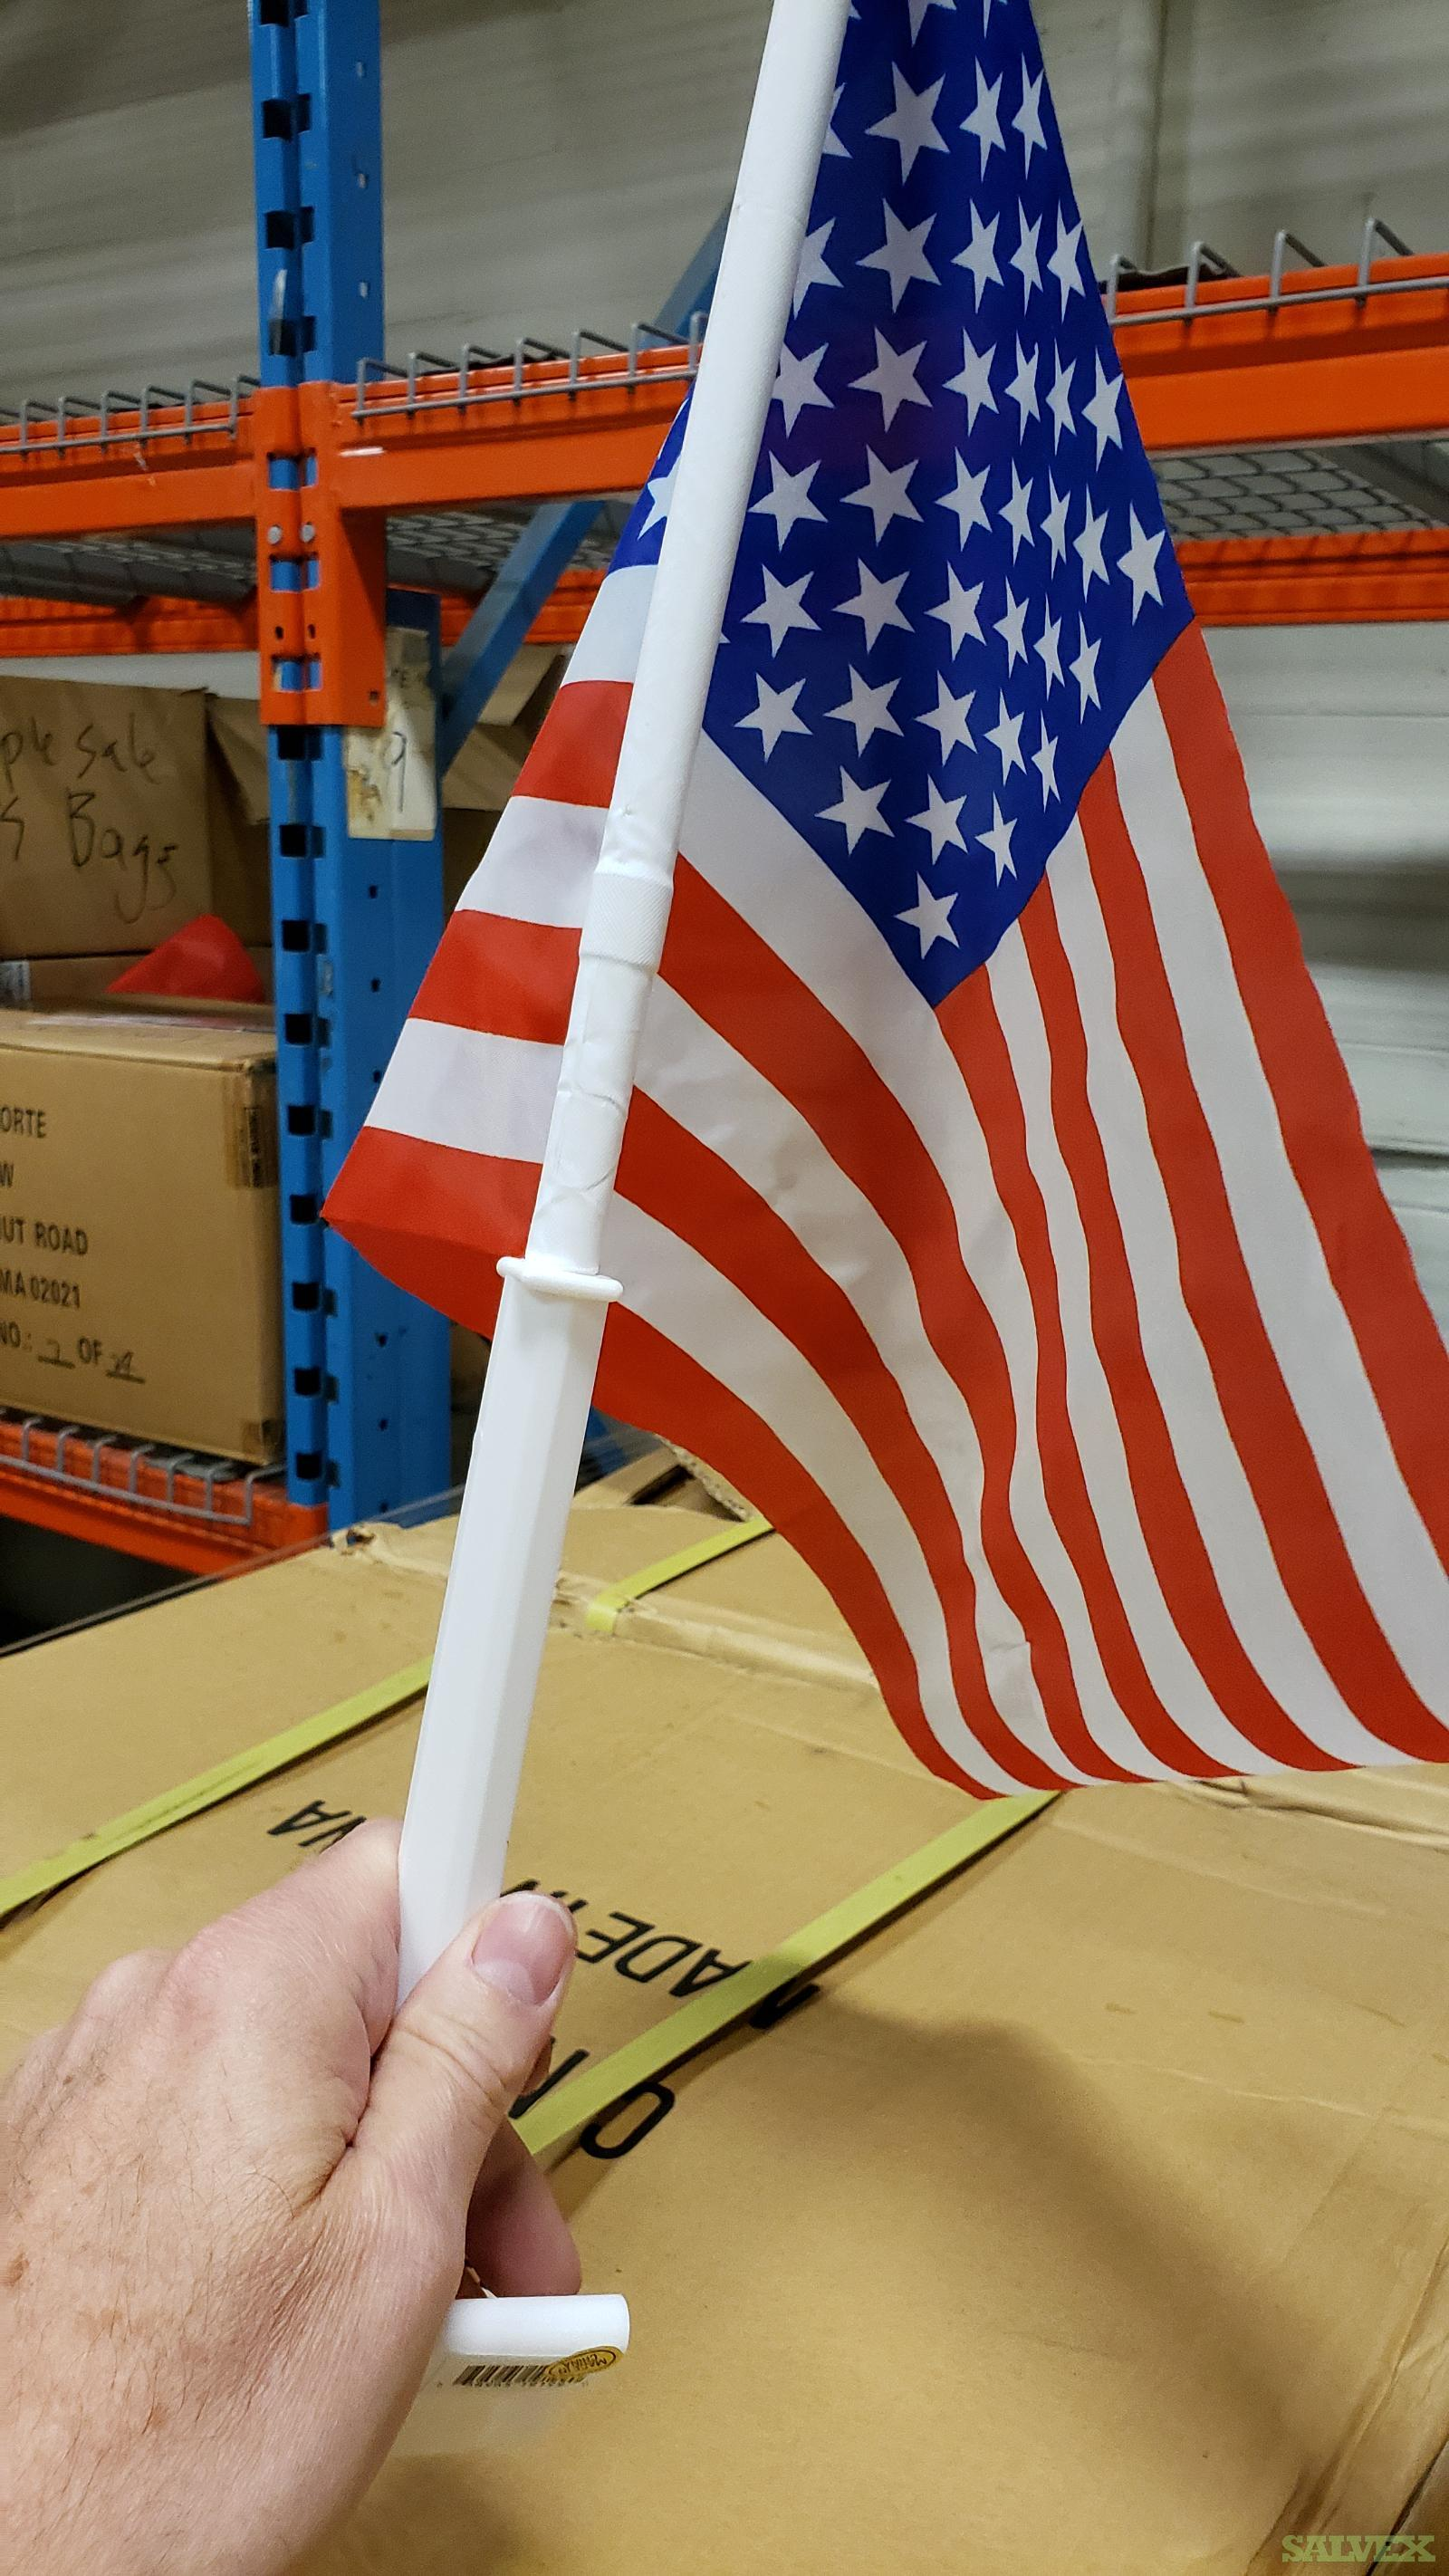 American Flags, Die Cast Model Trucks, and Ambient Clock Radios (4,104 Units)